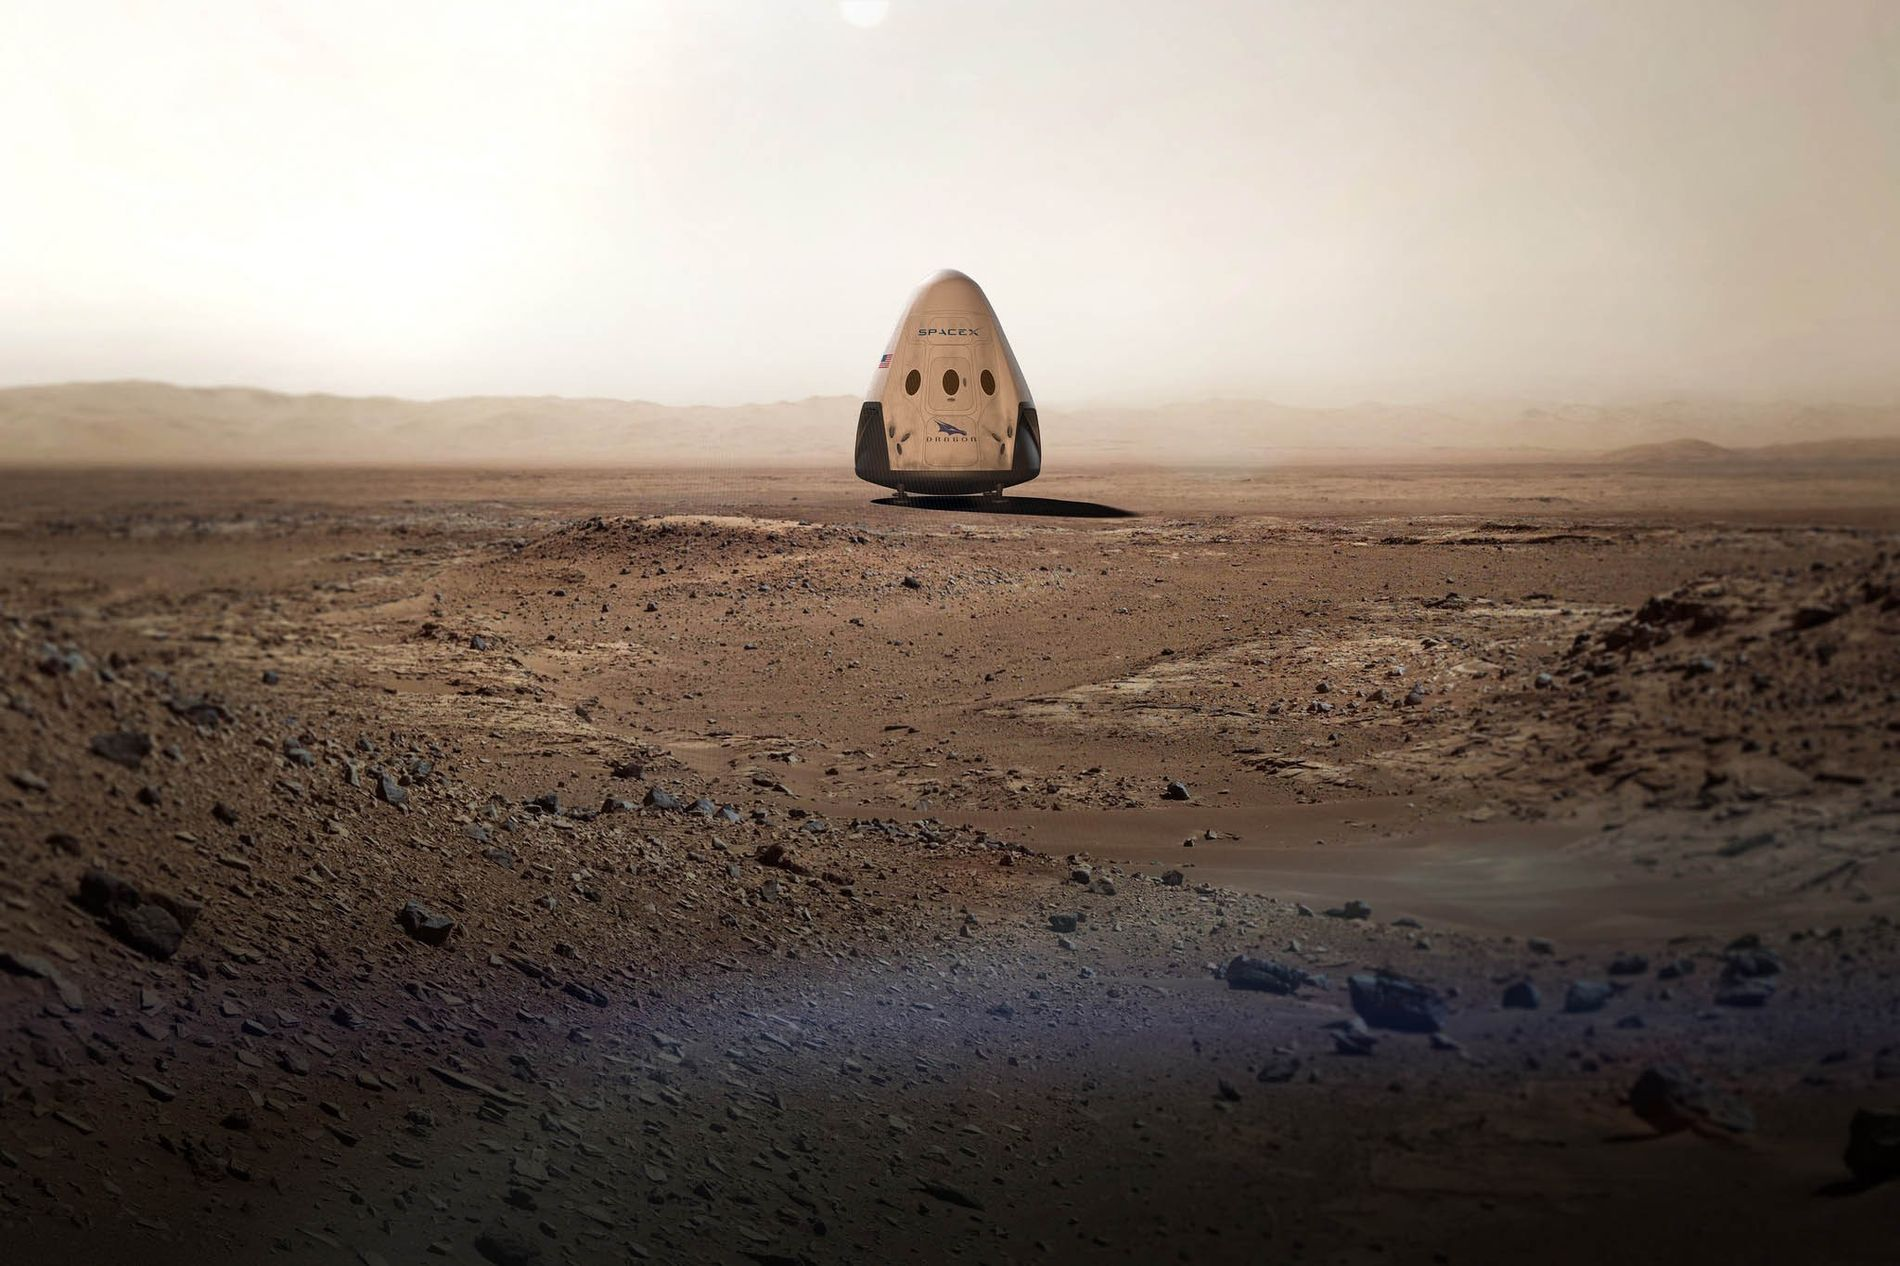 01-red-dragon-spacex